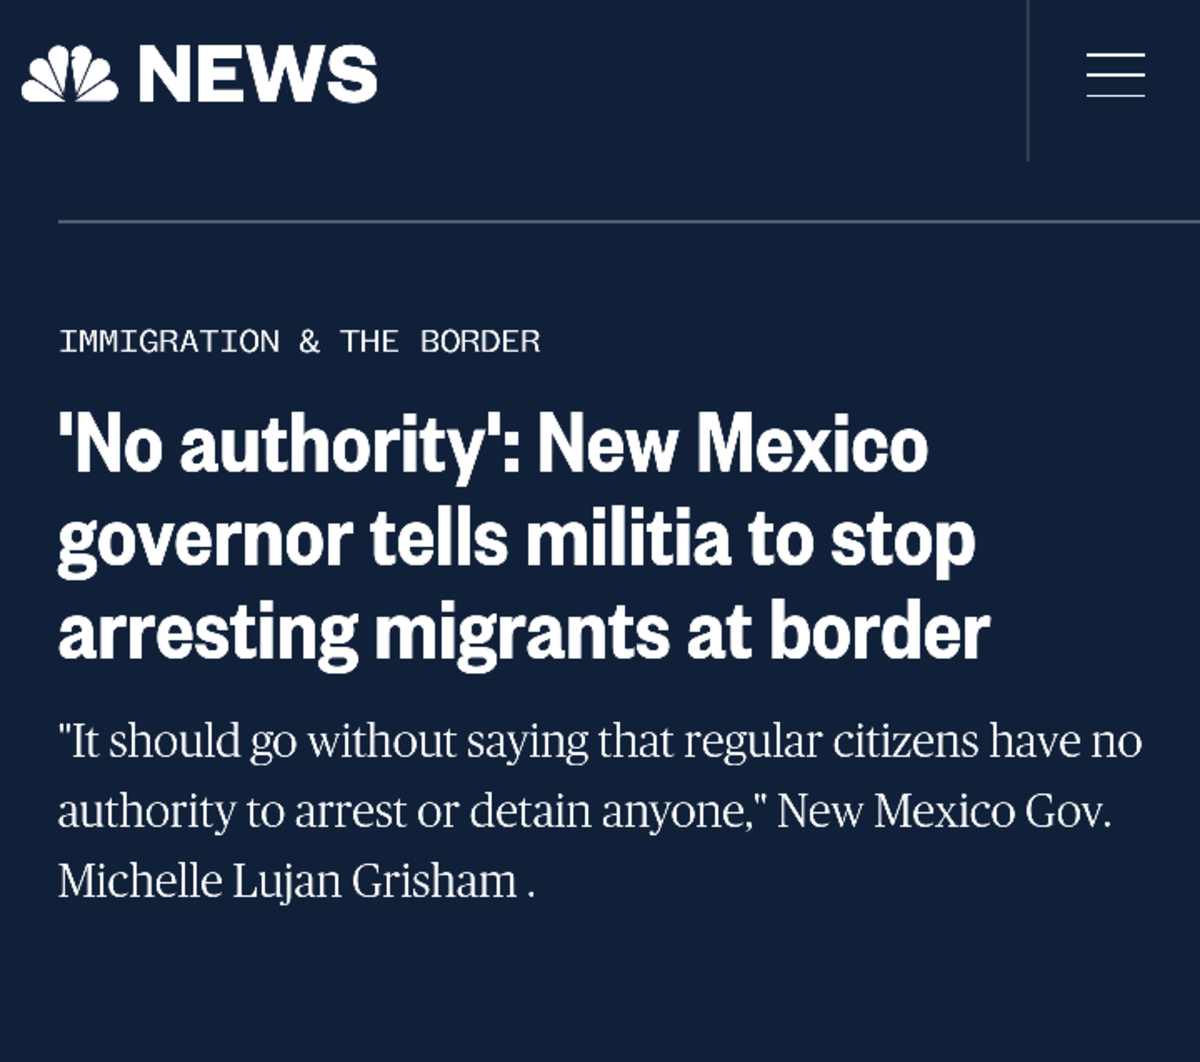 New Mexico governor goes full retard. Source: https://www.nbcnews.com/news/amp/ncna996516.. She has every right to be mad at the militia. They are getting rid of potential Democrat voters of the future